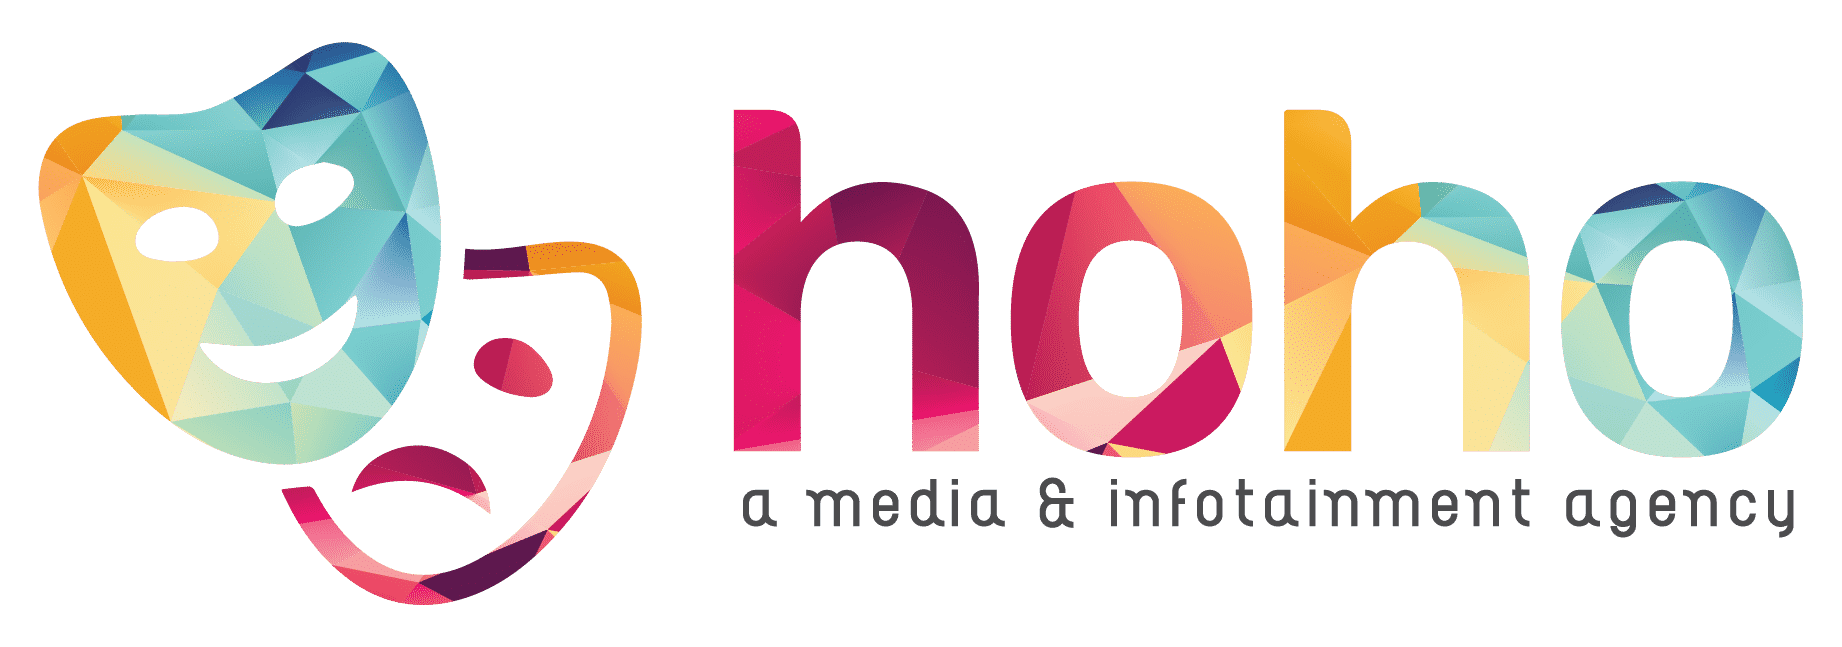 Hoho Media and infotainment Agency Pvt Ltd Logo